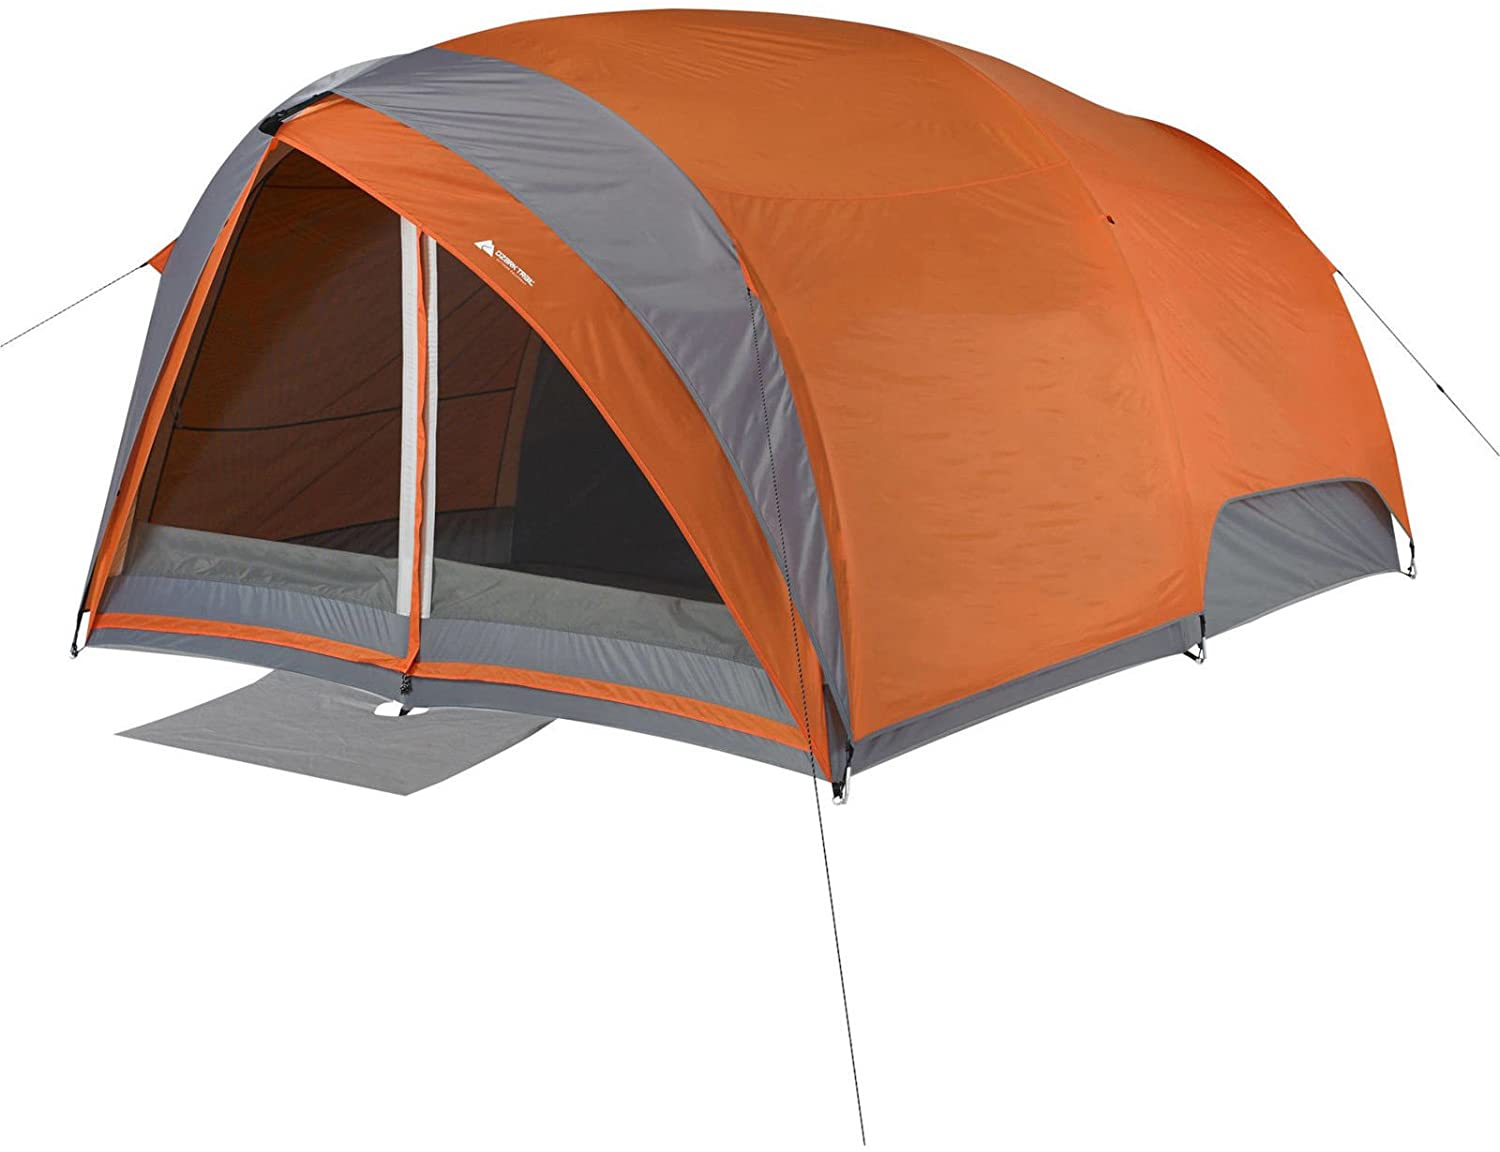 Best Ozark Trail Tents For The Money In 2021 Reviews 21